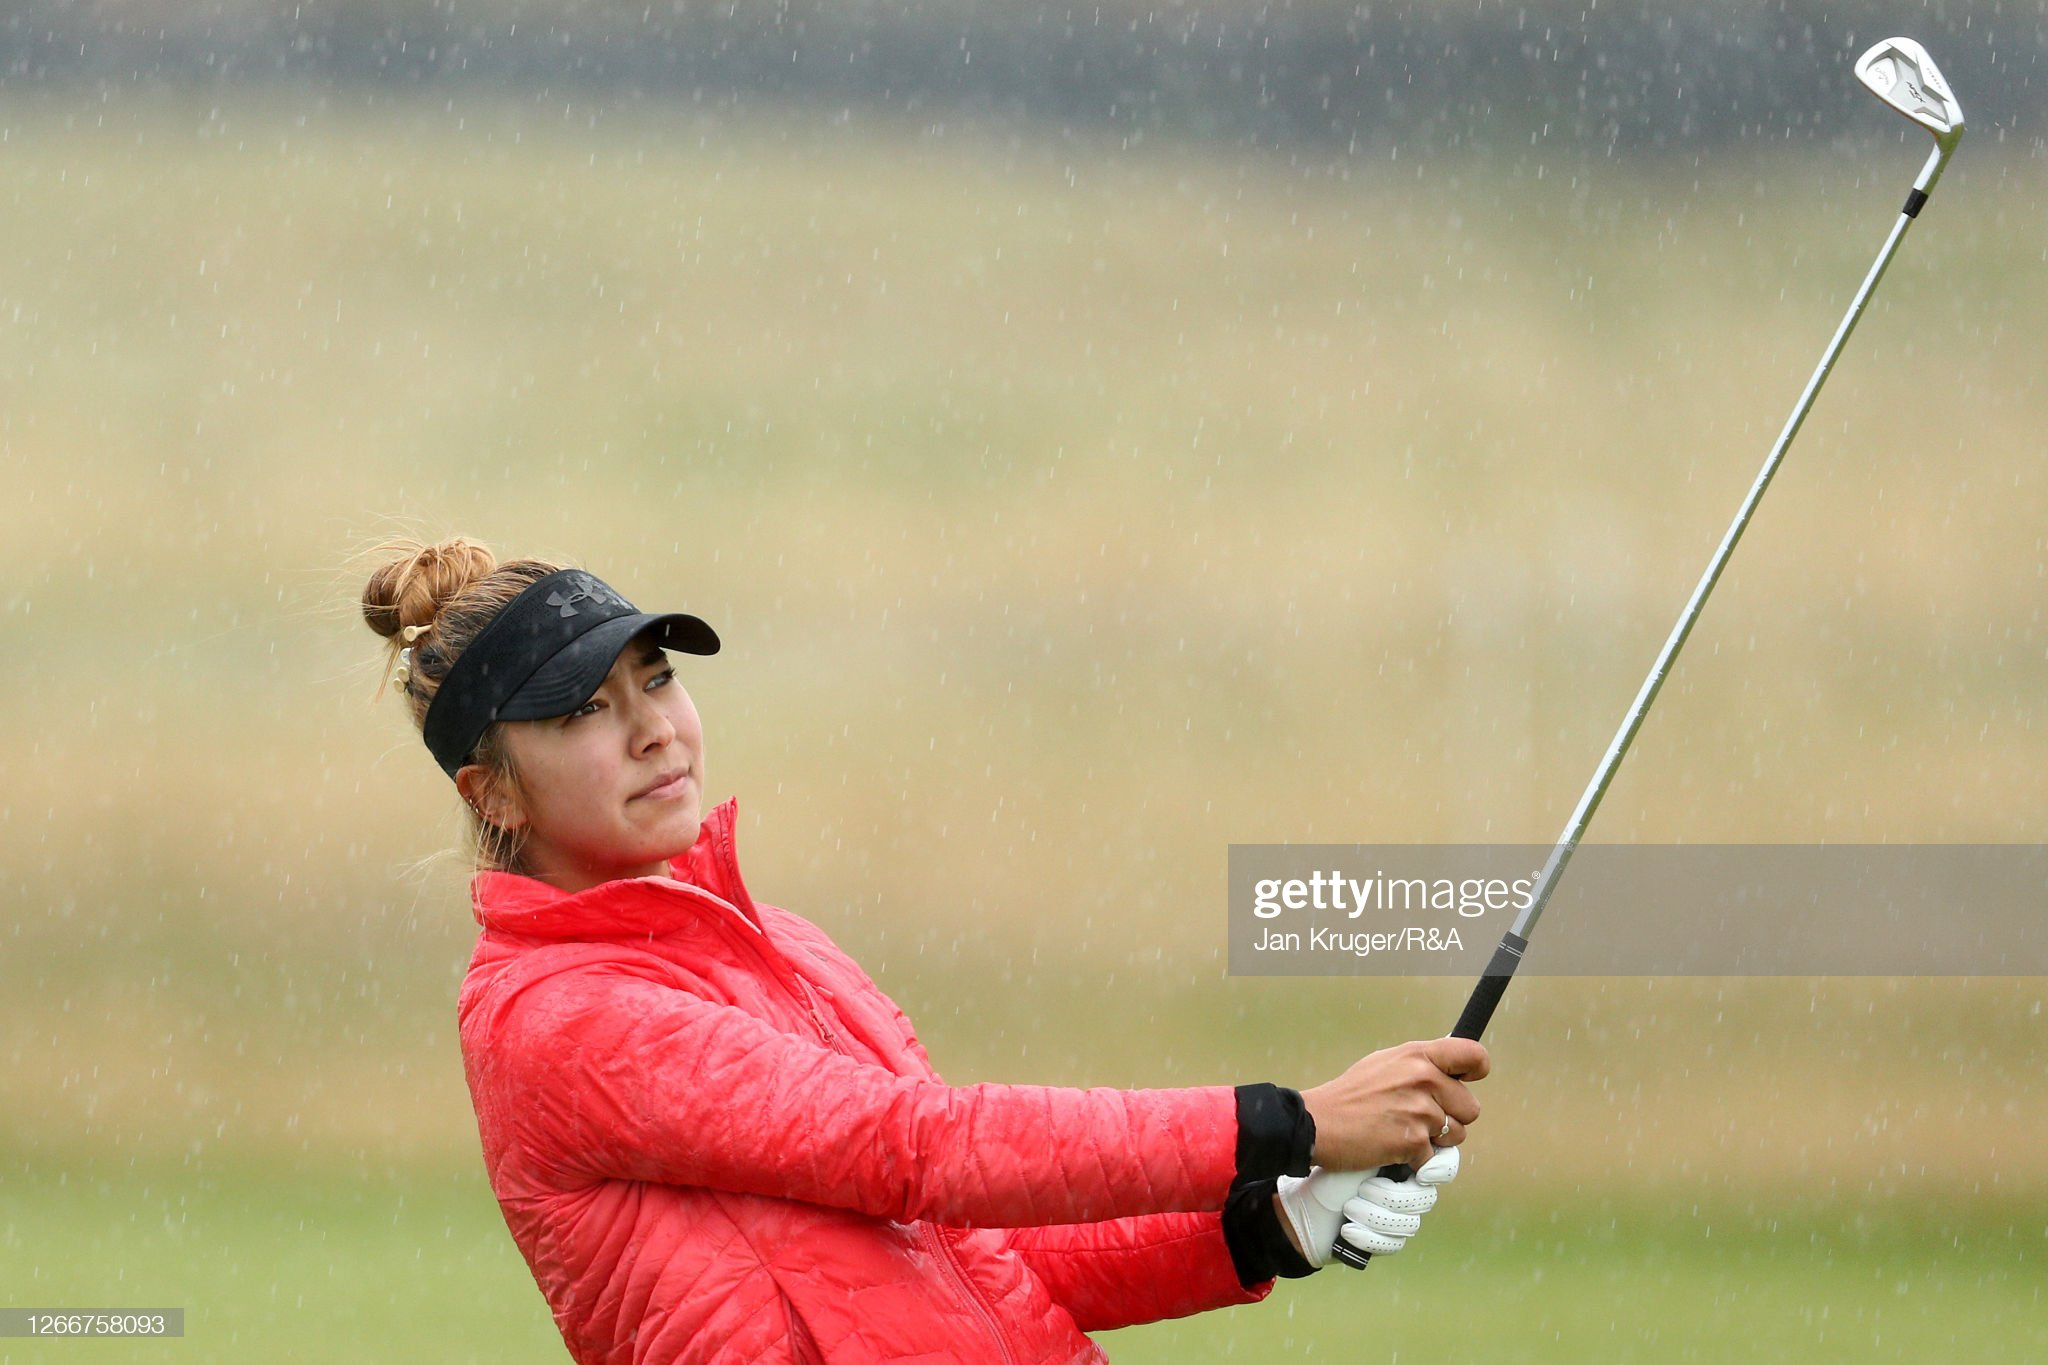 https://media.gettyimages.com/photos/alison-lee-of-united-states-of-america-in-action-during-a-practice-picture-id1266758093?s=2048x2048